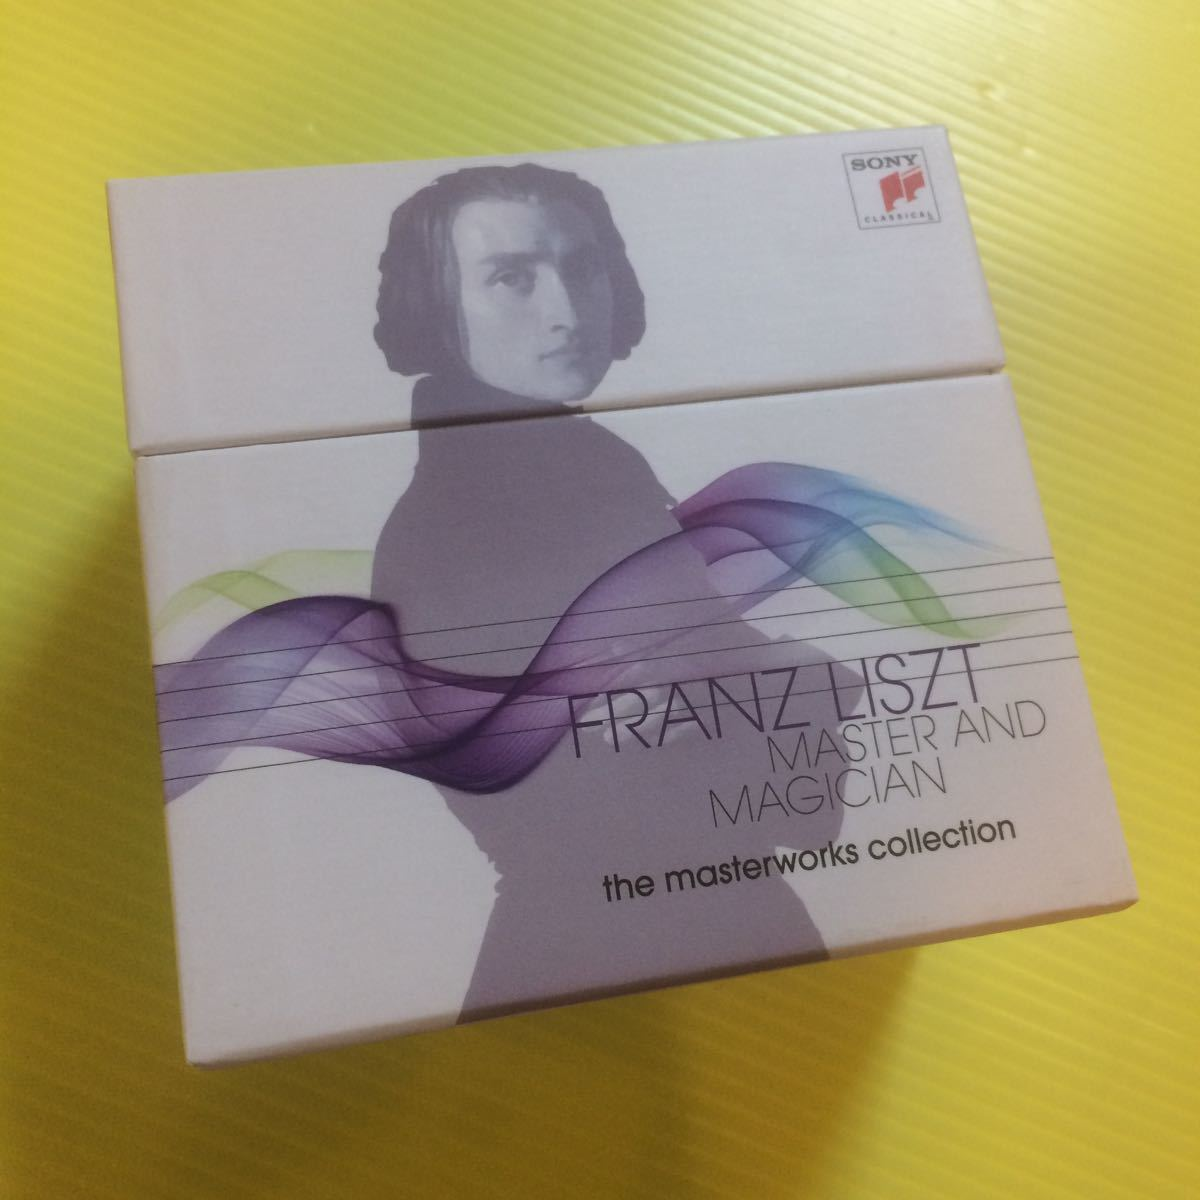 ◆ Franz Liszt フランツ・リスト◆ Master and Magician - The Masterworks Collection(CDBOX +DVD)【型番号】886977554223